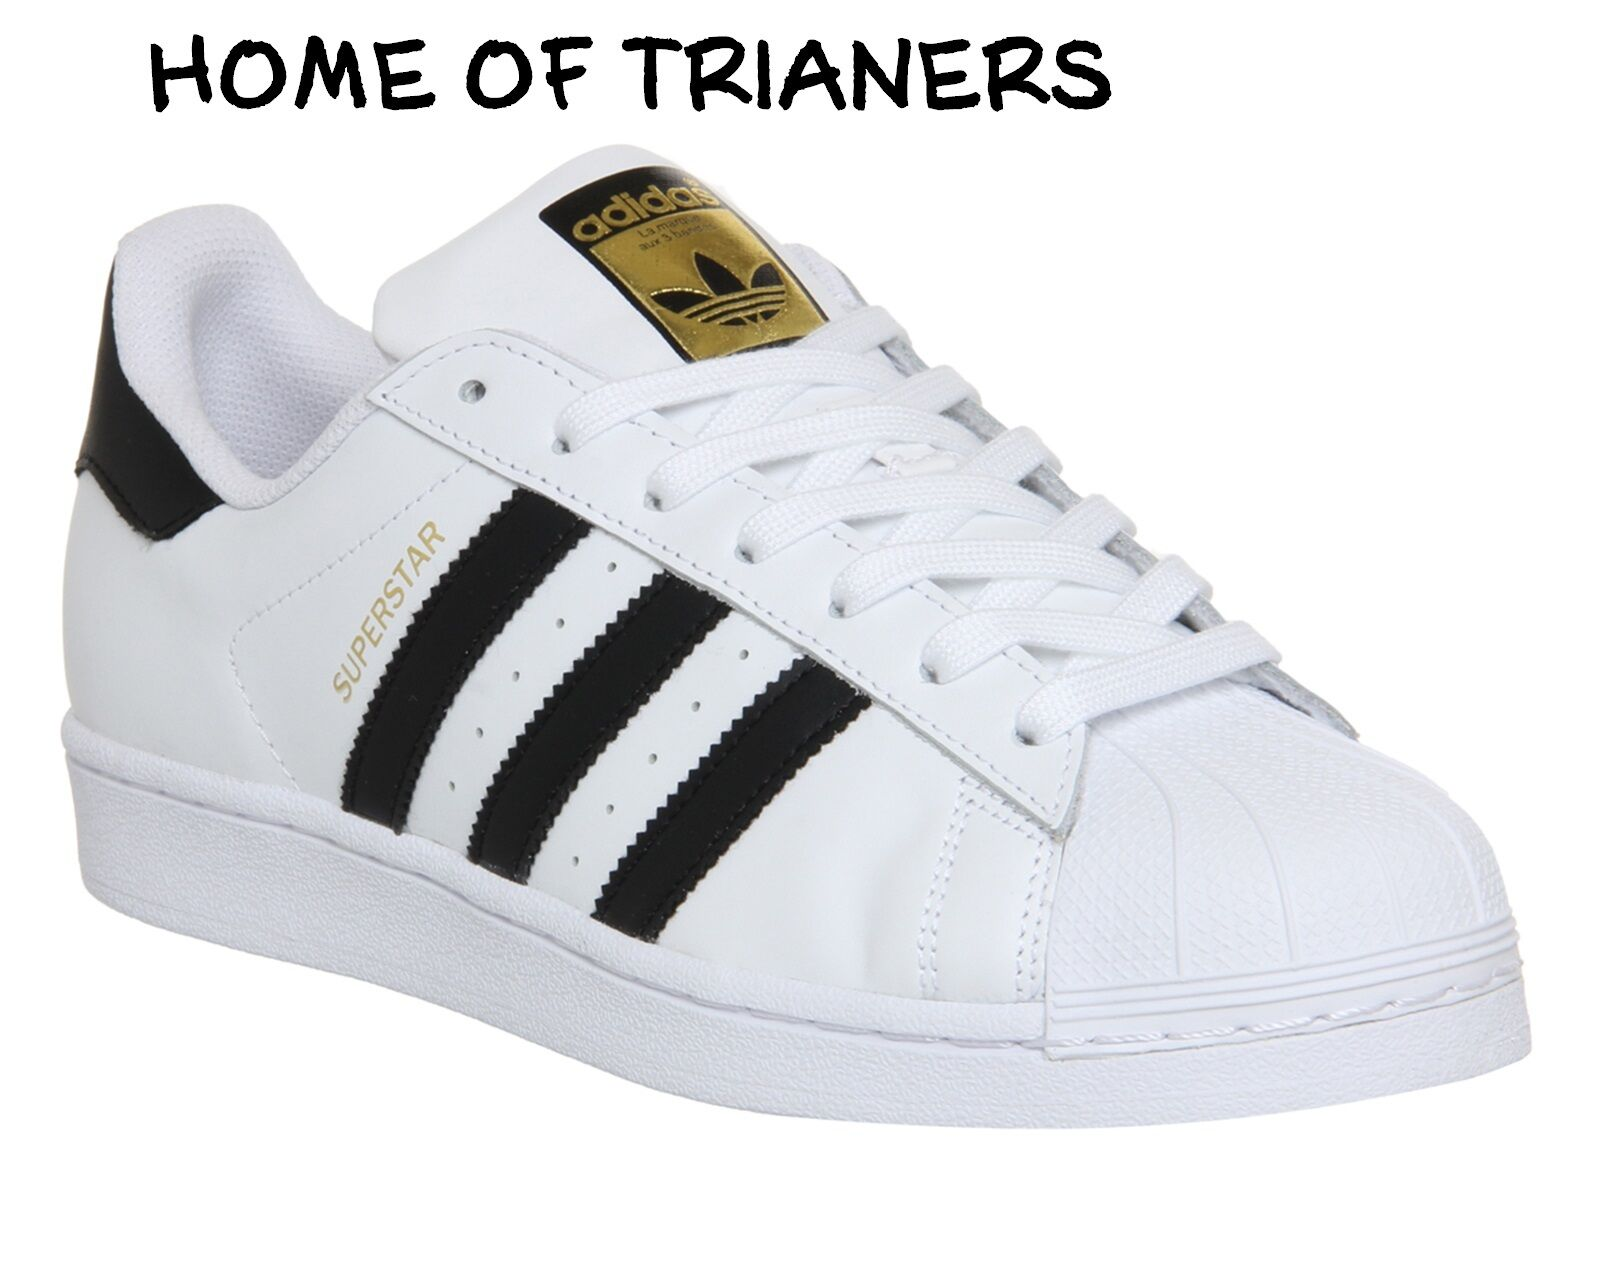 Adidas Super Star (GS) White Black gold Women Boys Girls Trainers All Sizes